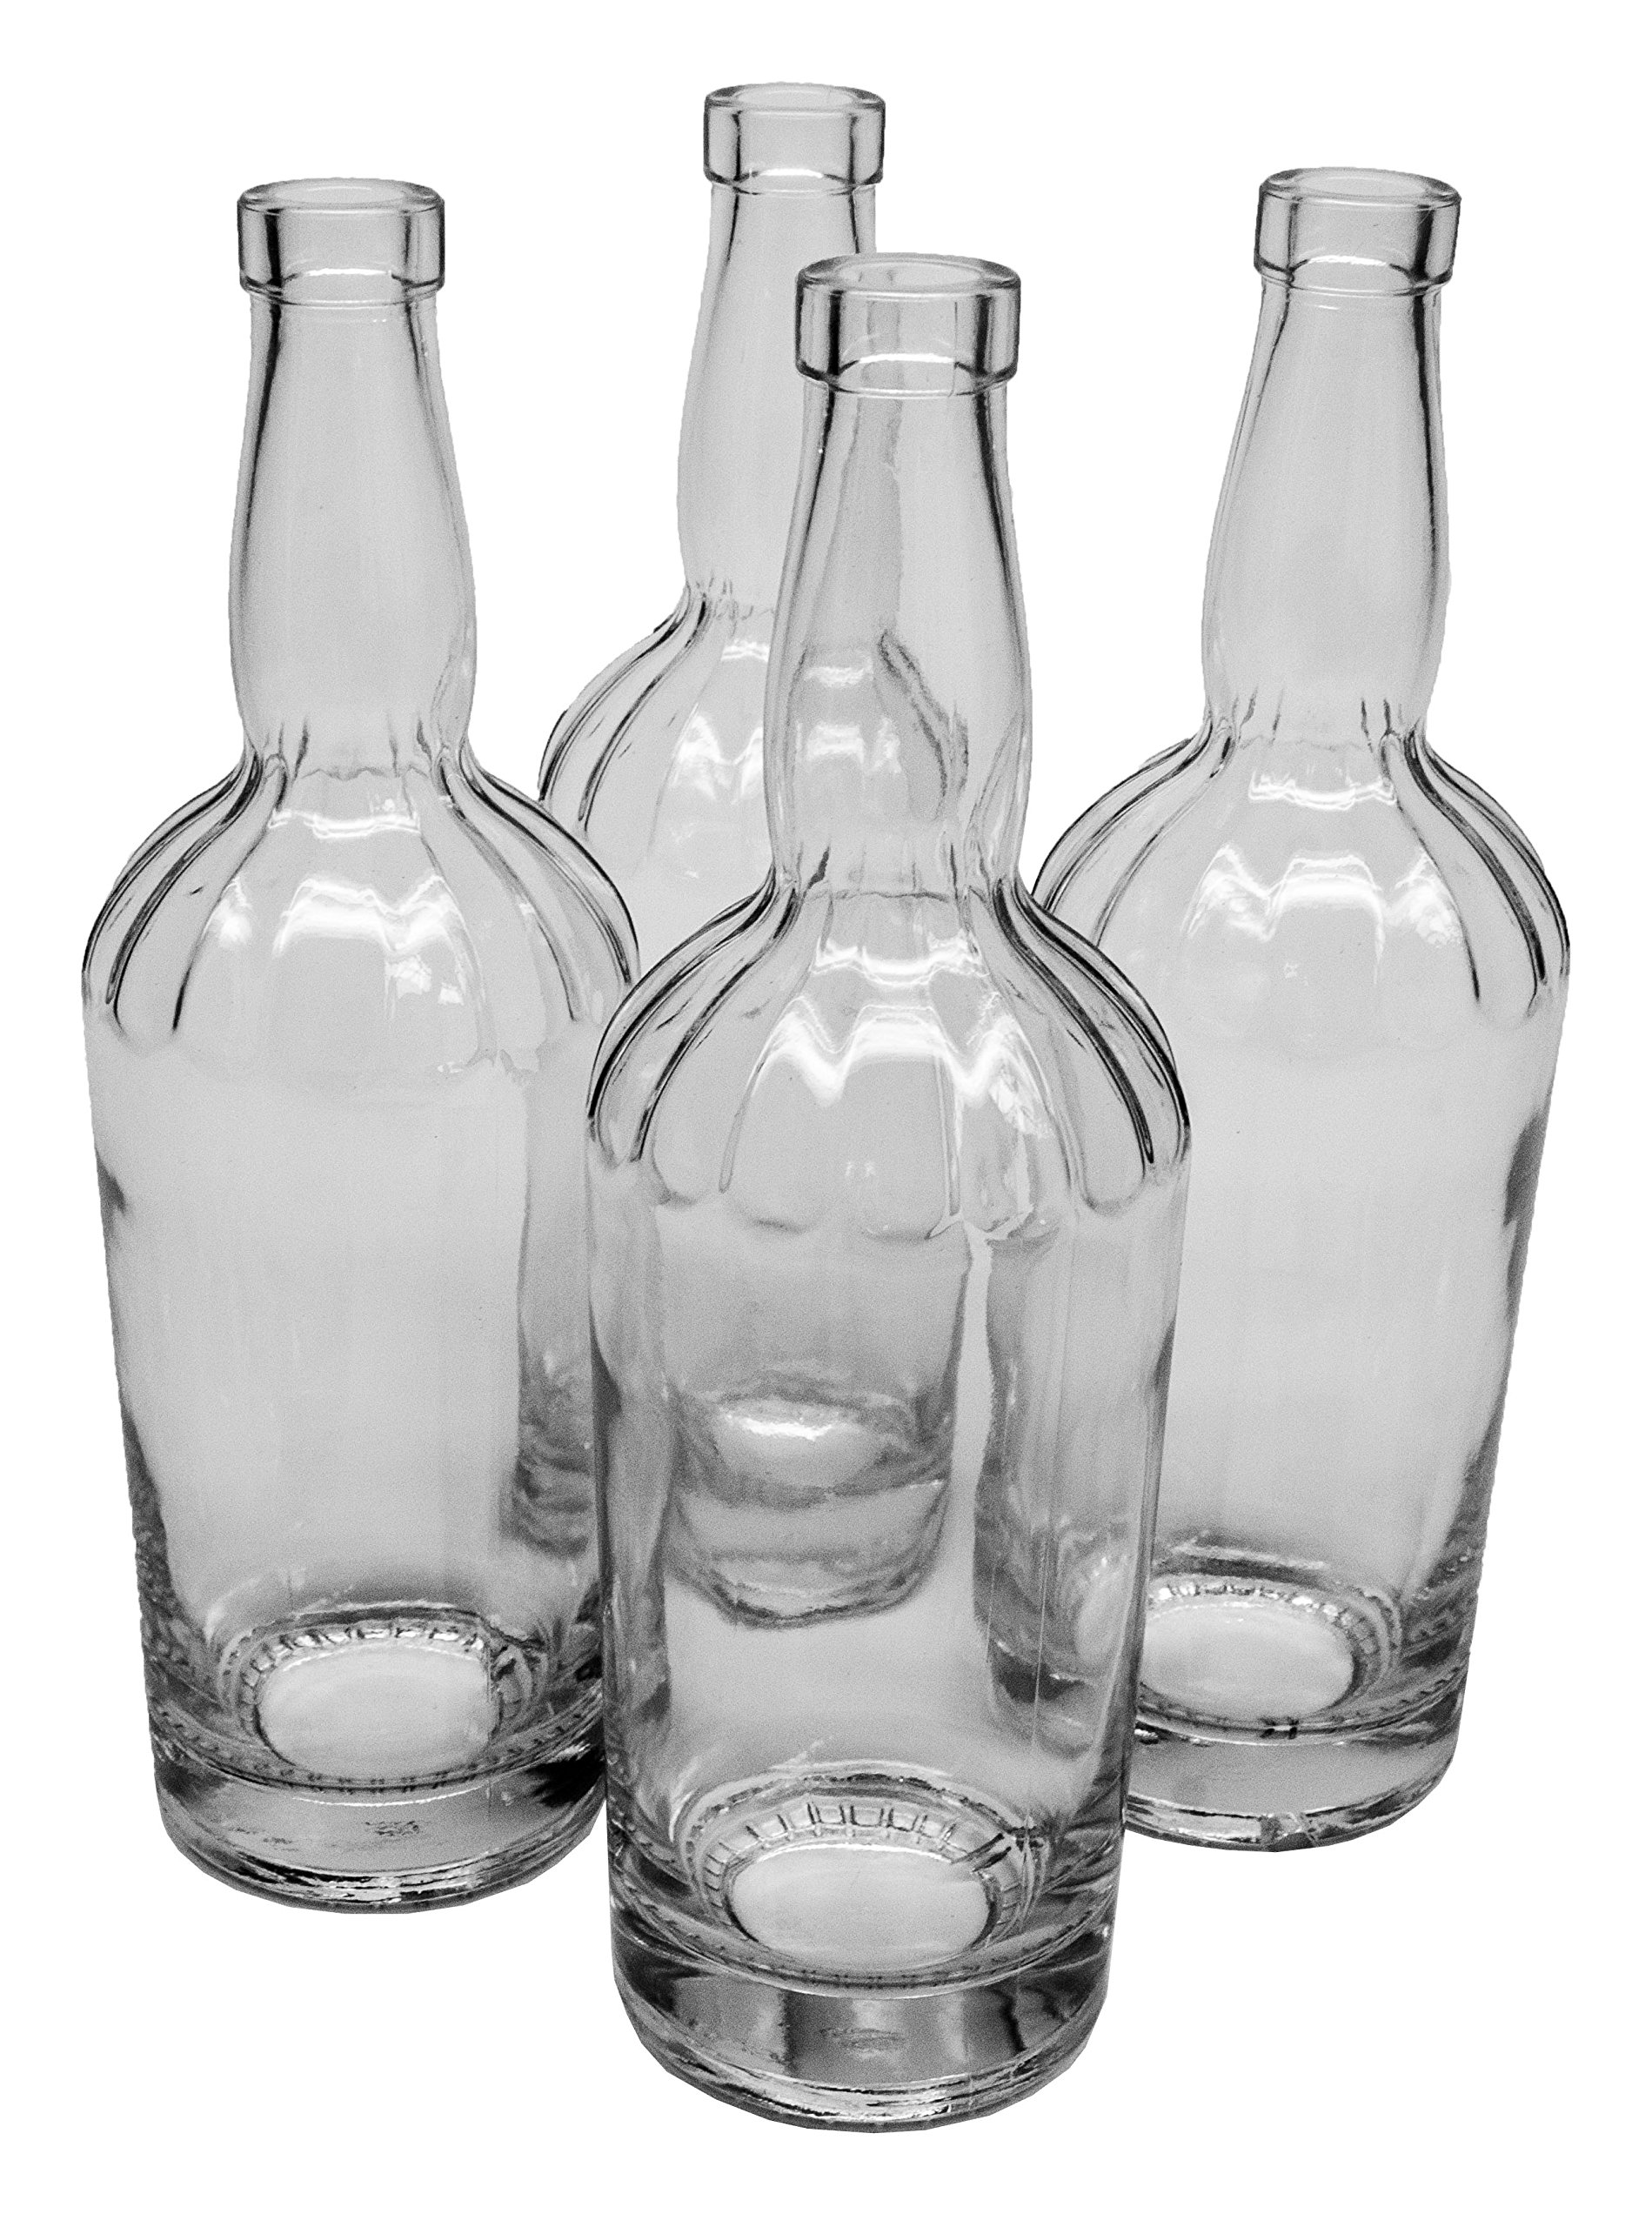 North Mountain Supply Jimmy Lee 750ml Clear Glass Wine/Spirits Bottle Bar Top Finish - Case of 4